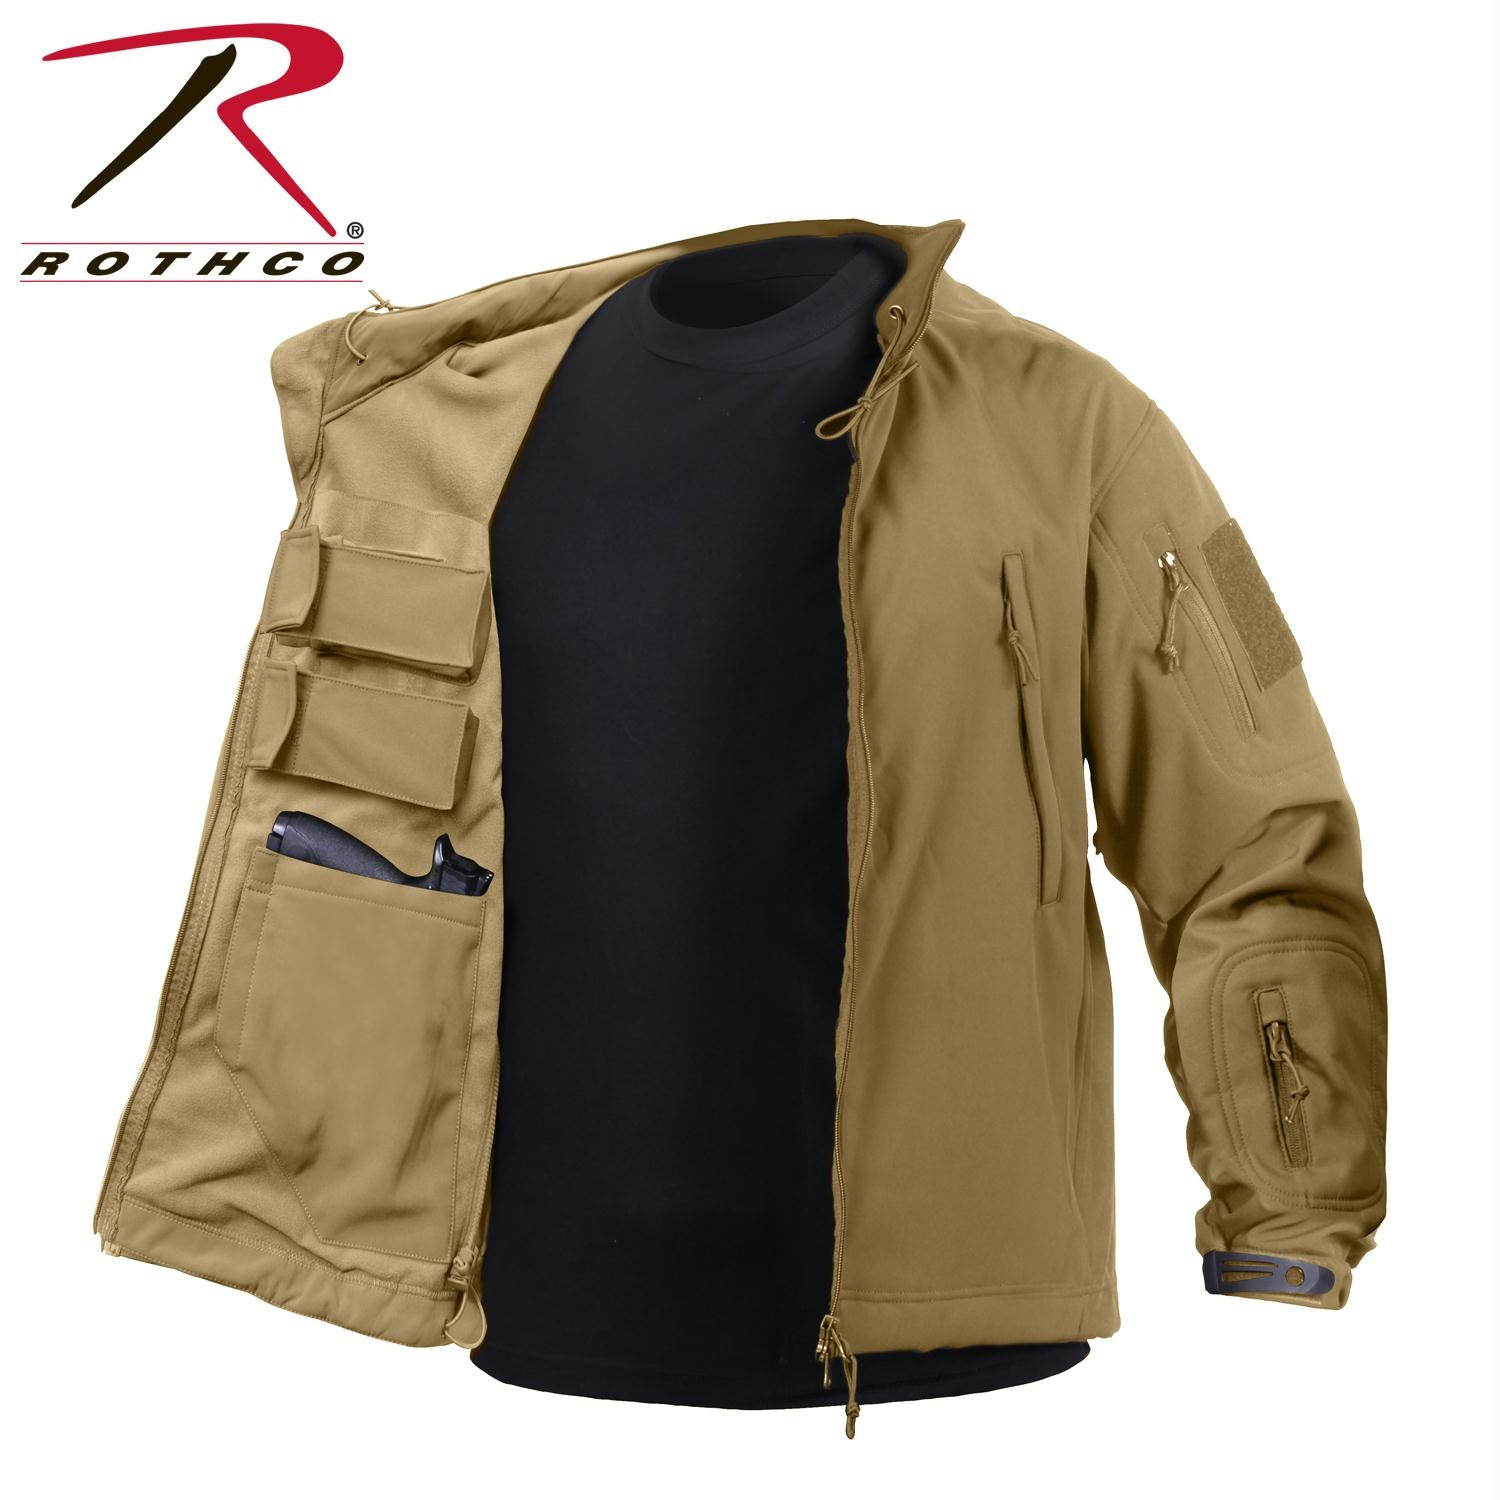 Rothco Concealed Carry Soft Shell Jacket - Coyote Brown / 4XL